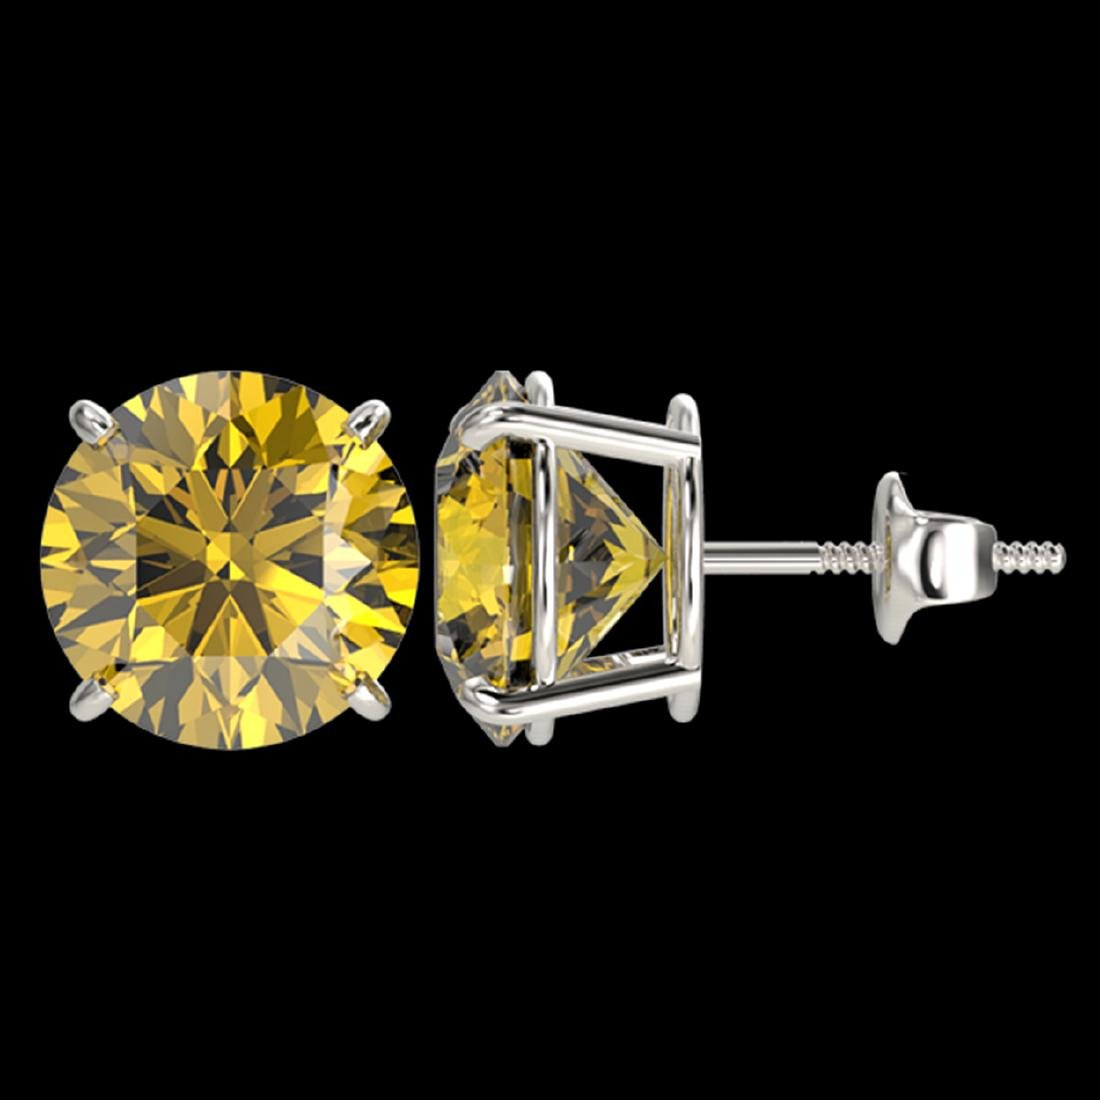 5 ctw Intense Yellow Diamond Stud Earrings 10K White - 2